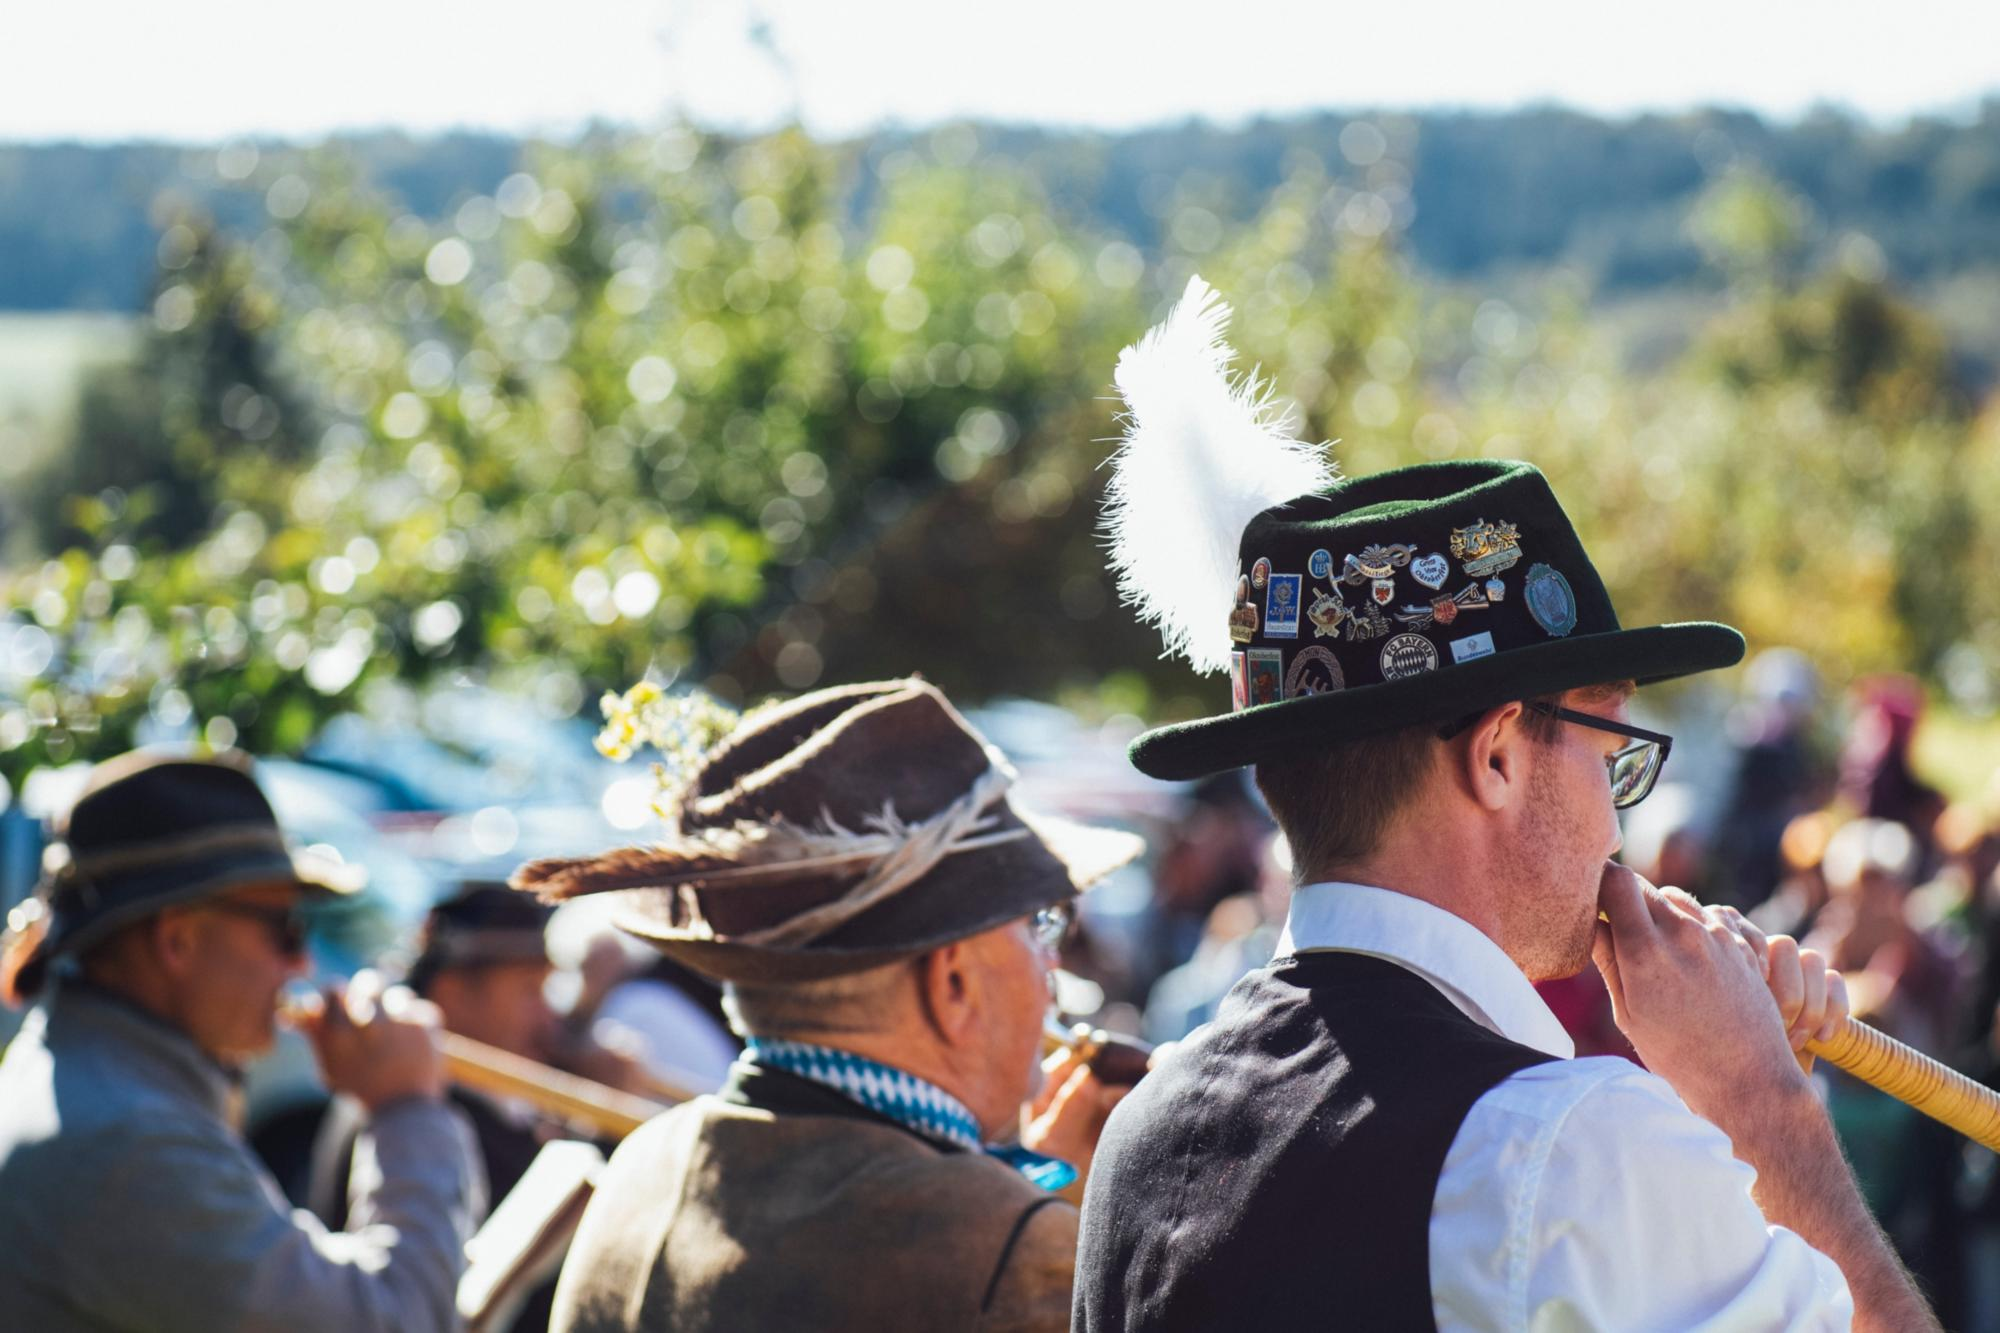 Oktoberfest (c) Photo by Markus Spiske on Unsplash